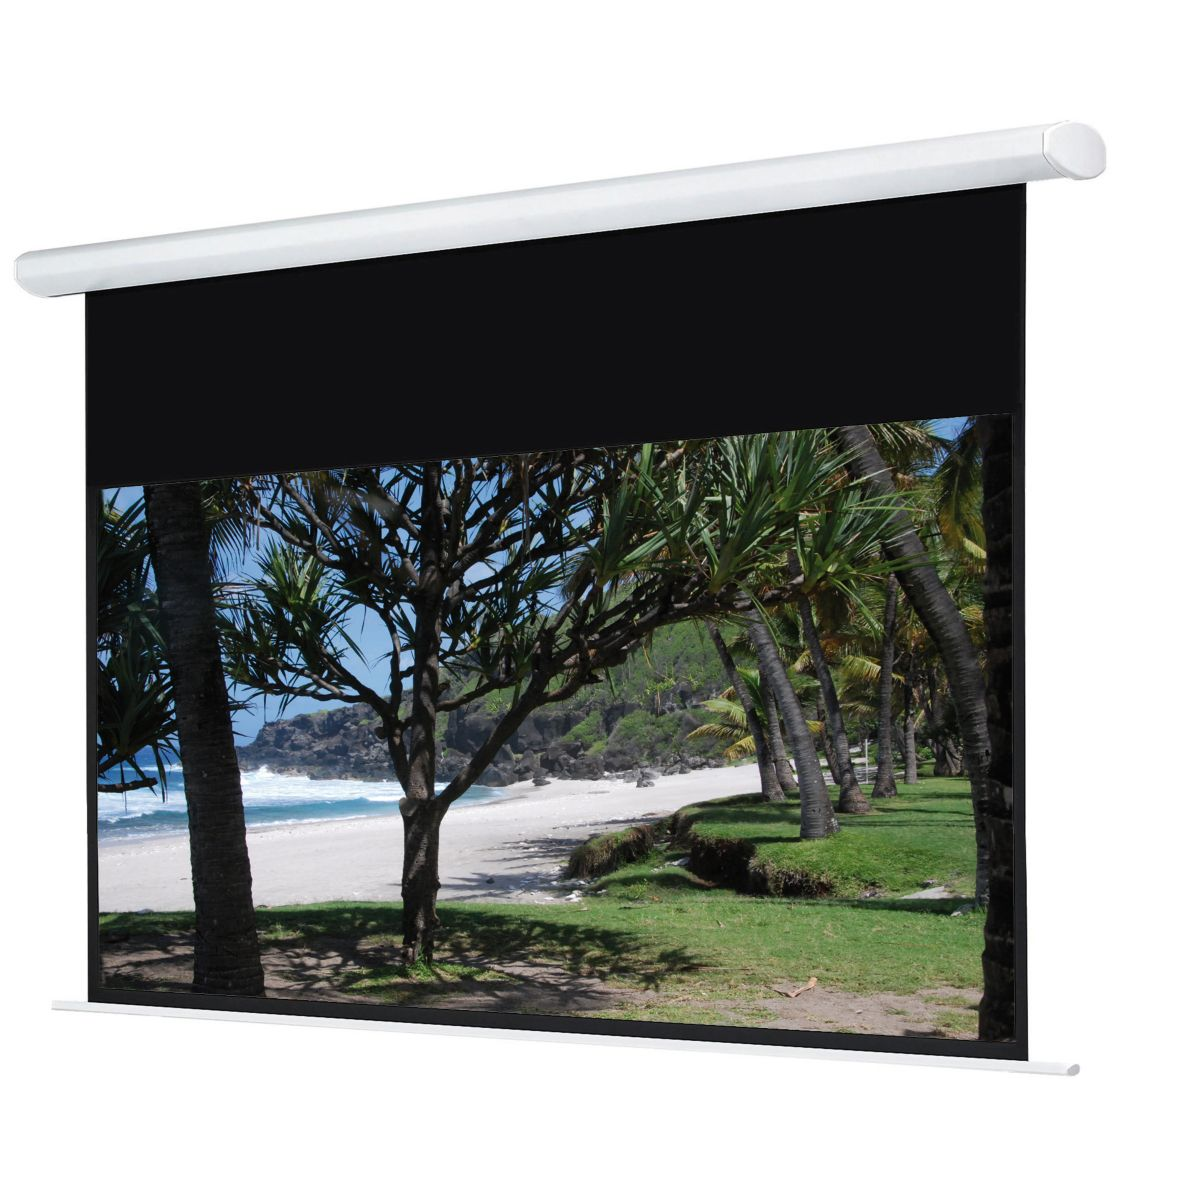 Ecran de projection oray hcm4rb1 135x240 motoris� 16:9 - 20% de remise imm�diate avec le code : deal20 (photo)